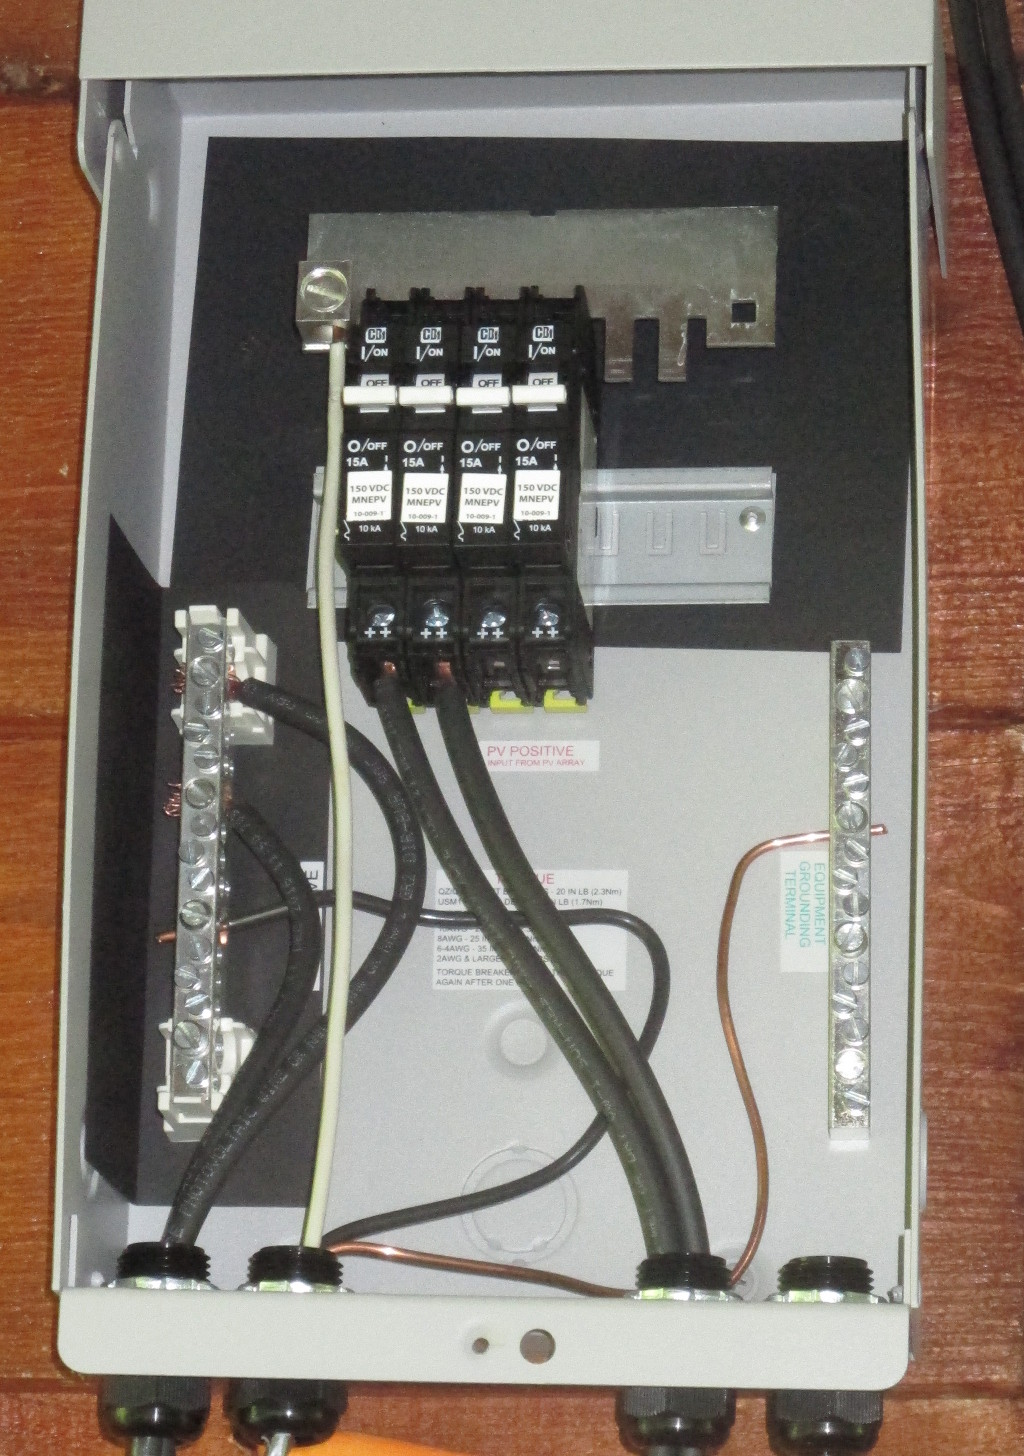 PV combiner box wiring